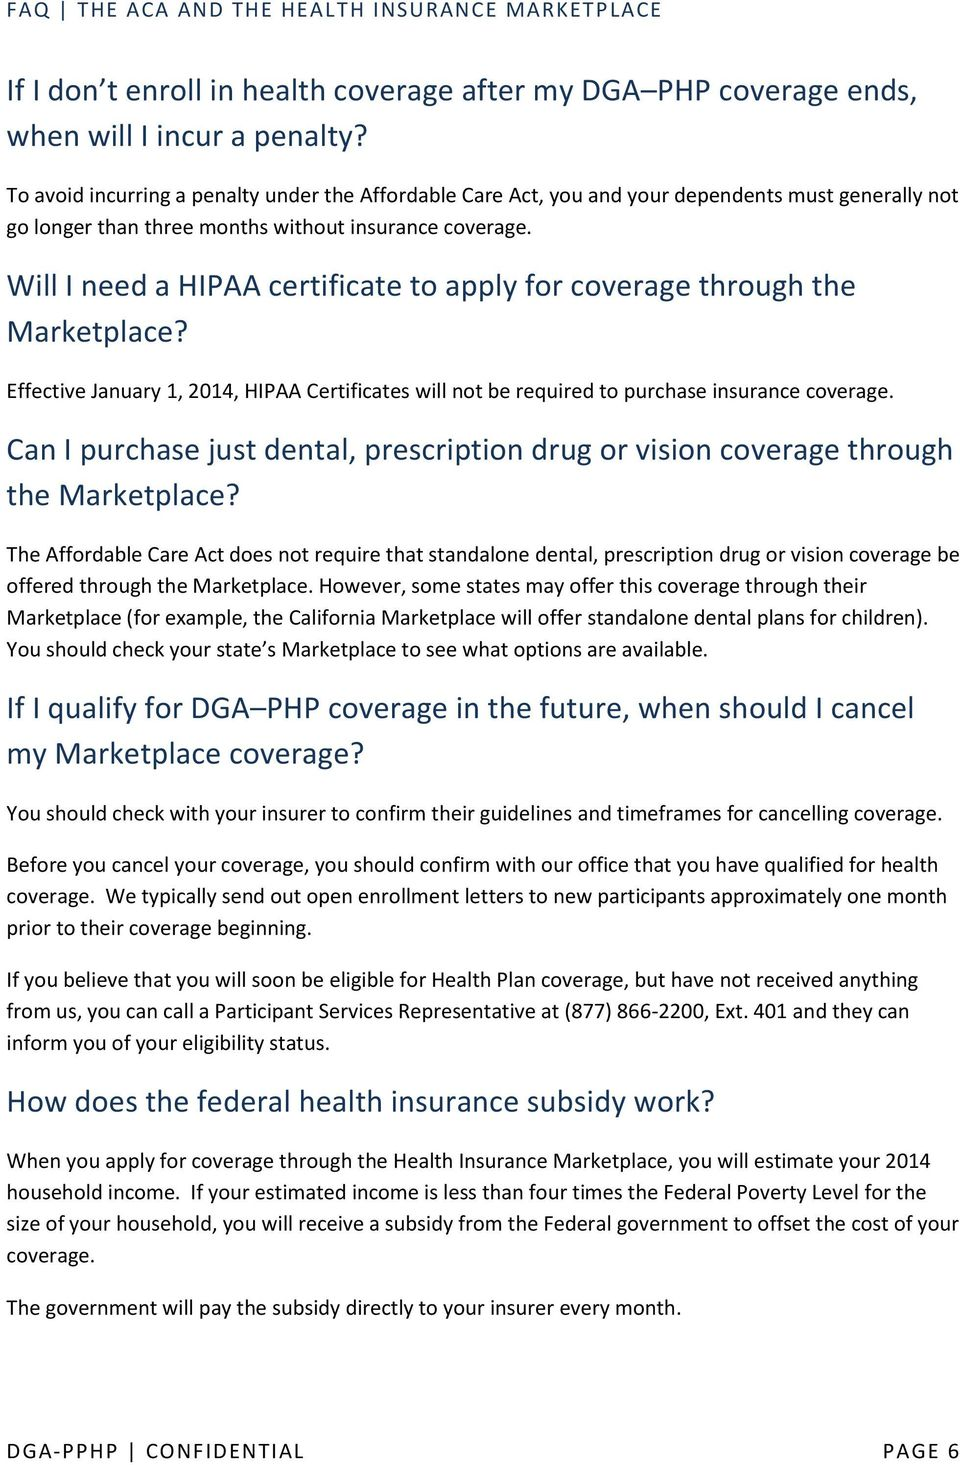 Will I need a HIPAA certificate to apply for coverage through the Marketplace? Effective January 1, 2014, HIPAA Certificates will not be required to purchase insurance coverage.